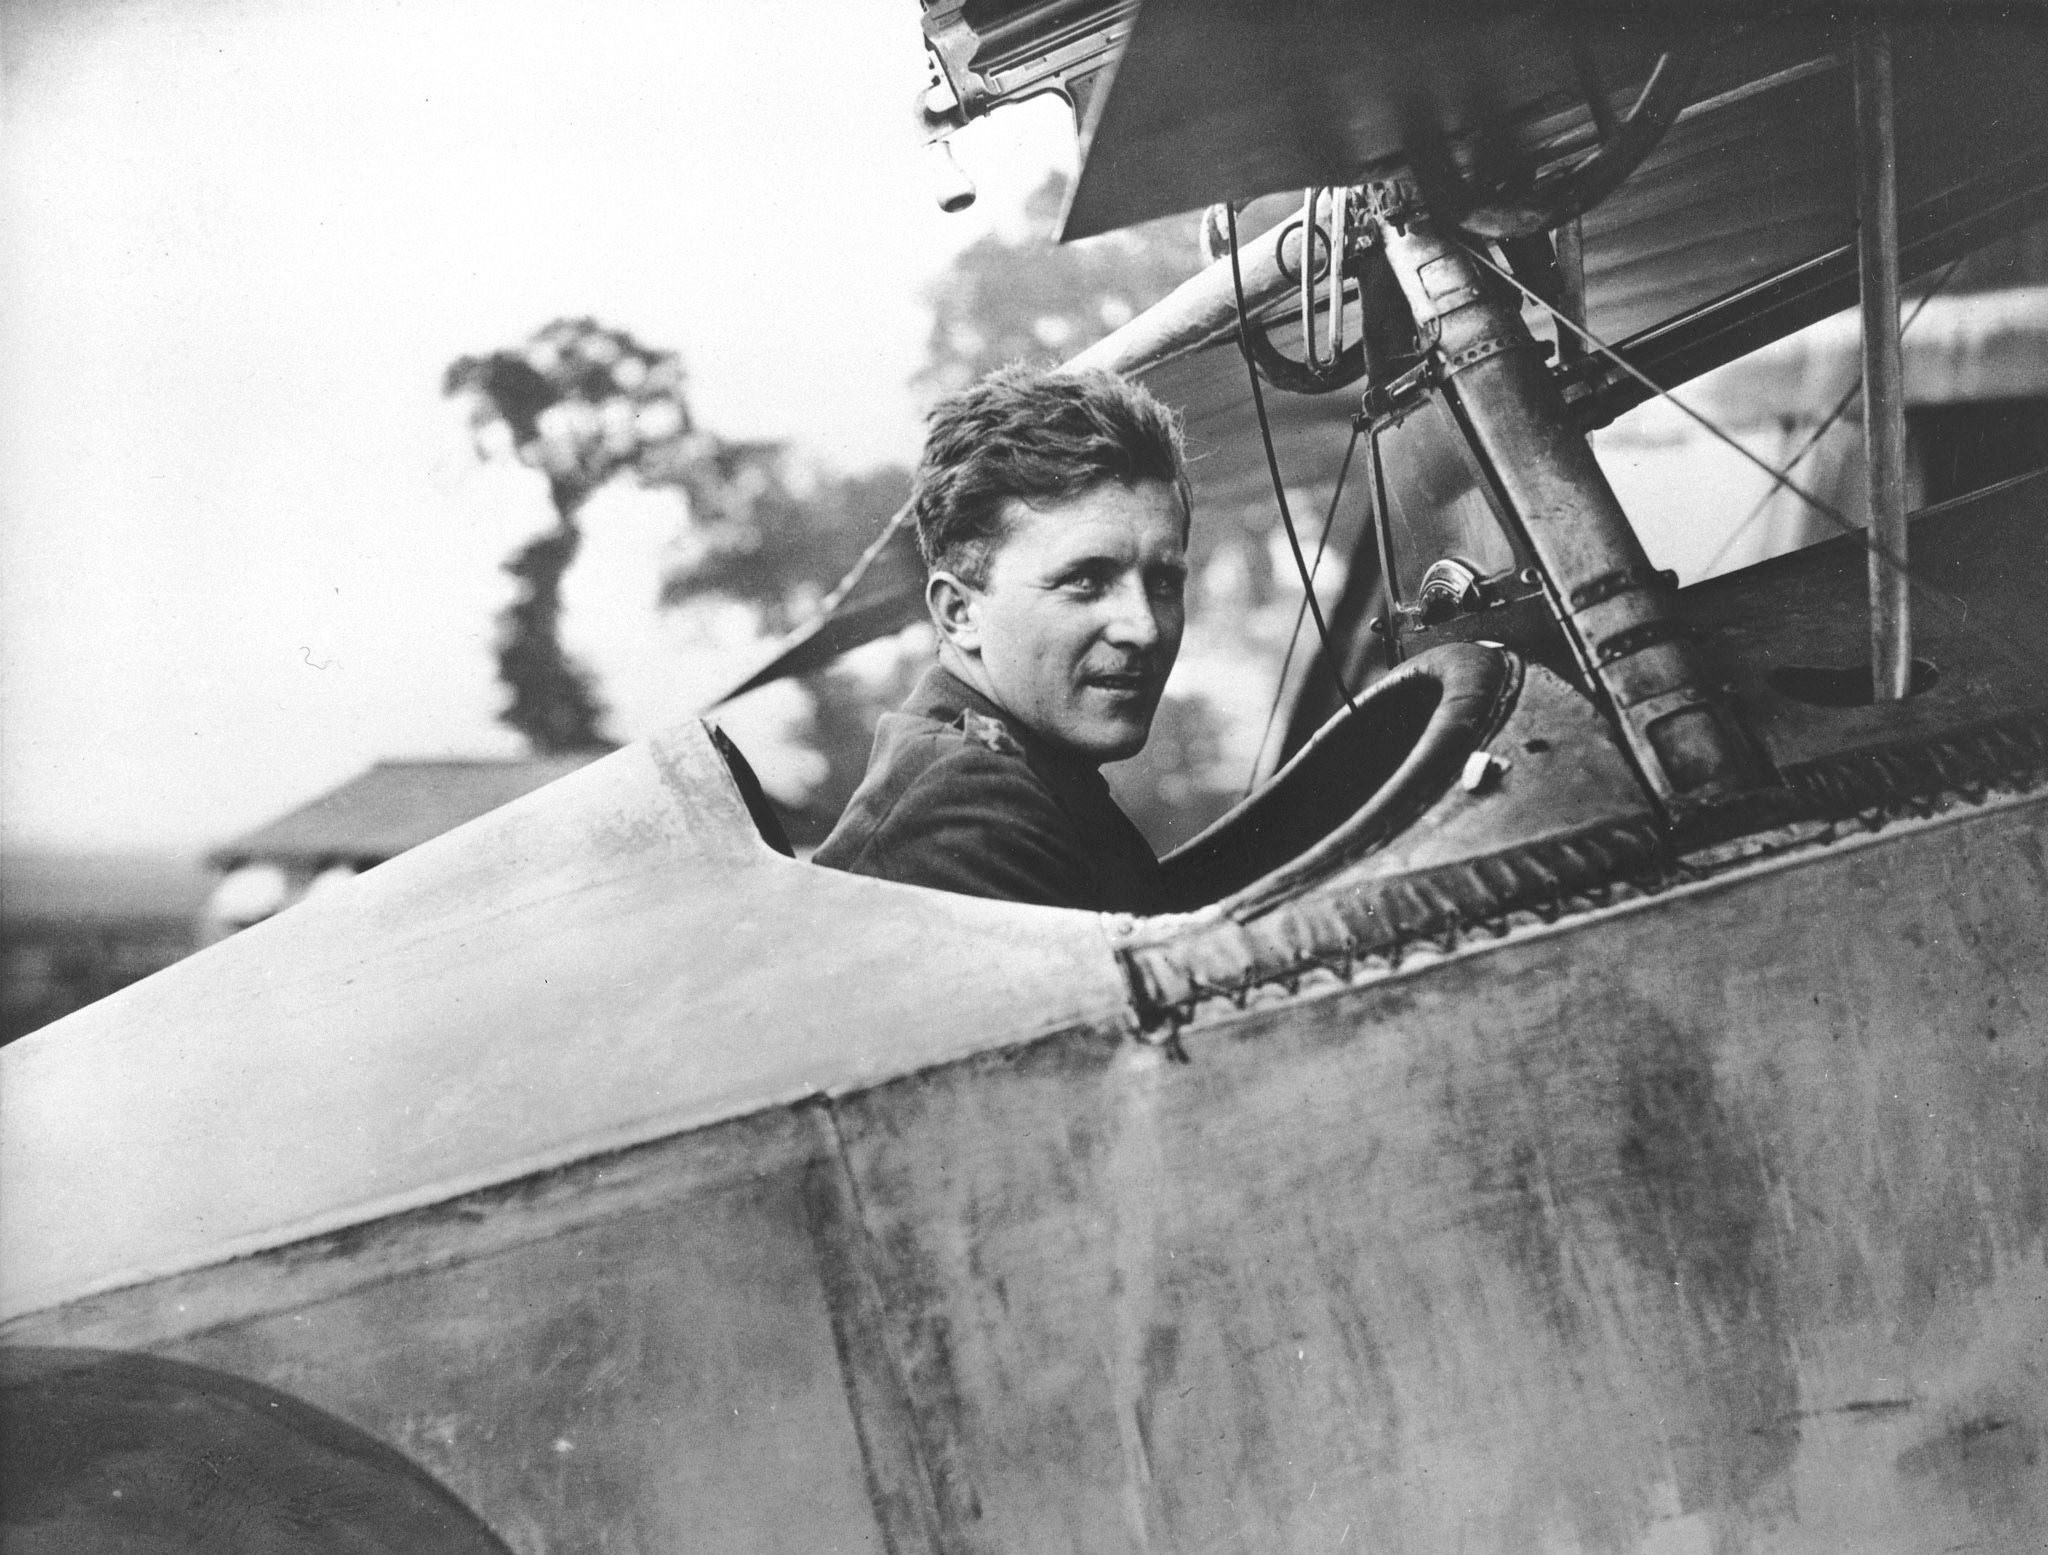 News Royal Canadian Air Force News Article Happy Birthday Billy Bishop Histoire Canadienne Avion De Combat Premiere Guerre Mondiale